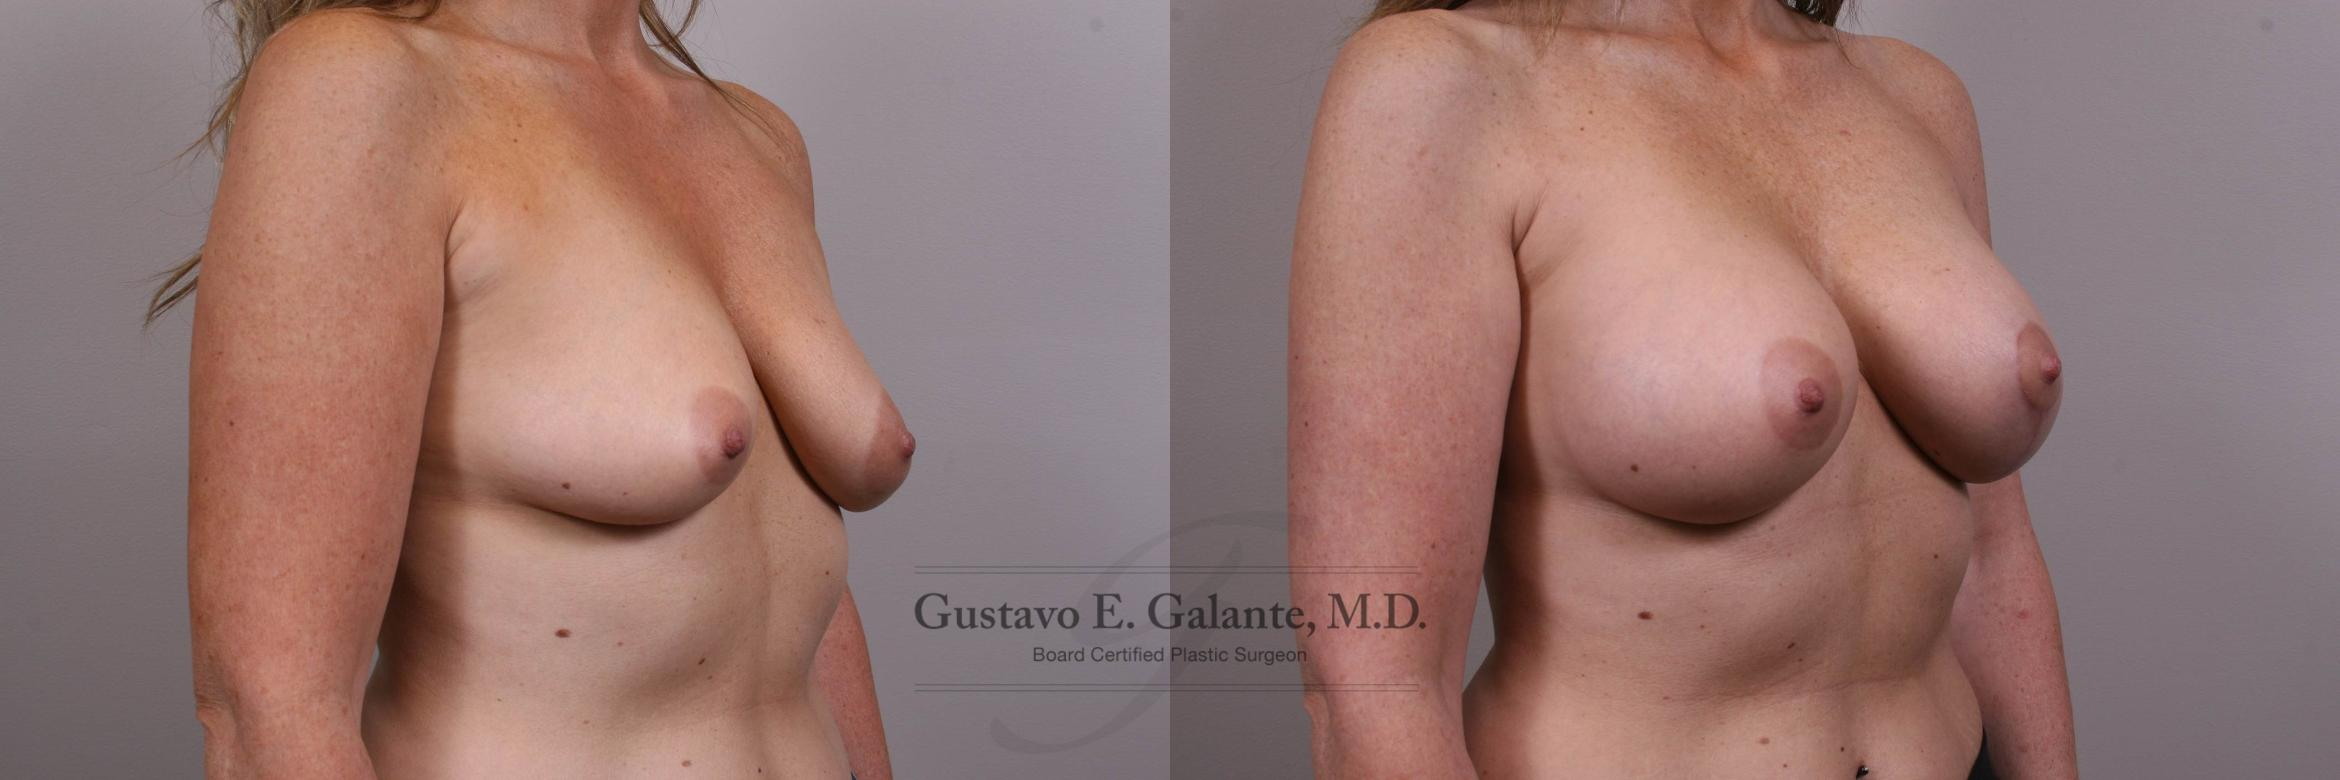 Breast Augmentation Case 134 Before & After View #3 | Valparaiso & Schererville, IN | Gustavo E. Galante, MD